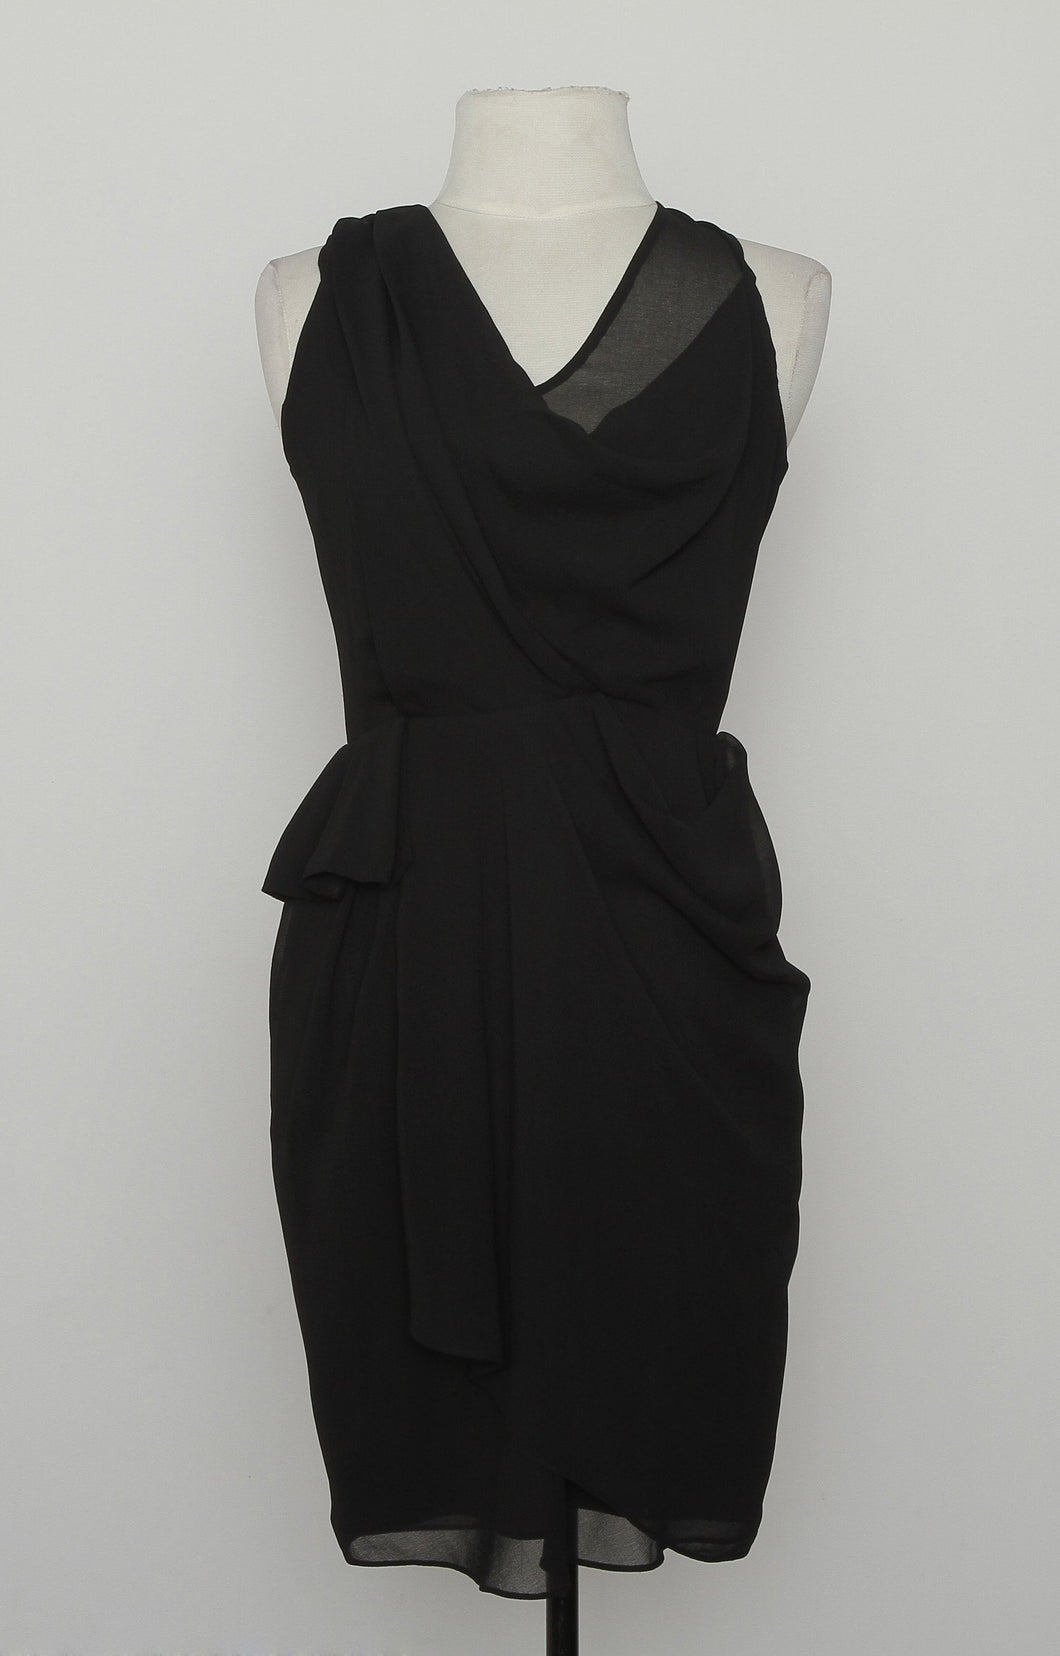 Diane Von Furstenberg Black Sheer Scoop Neck Dress With Zipper